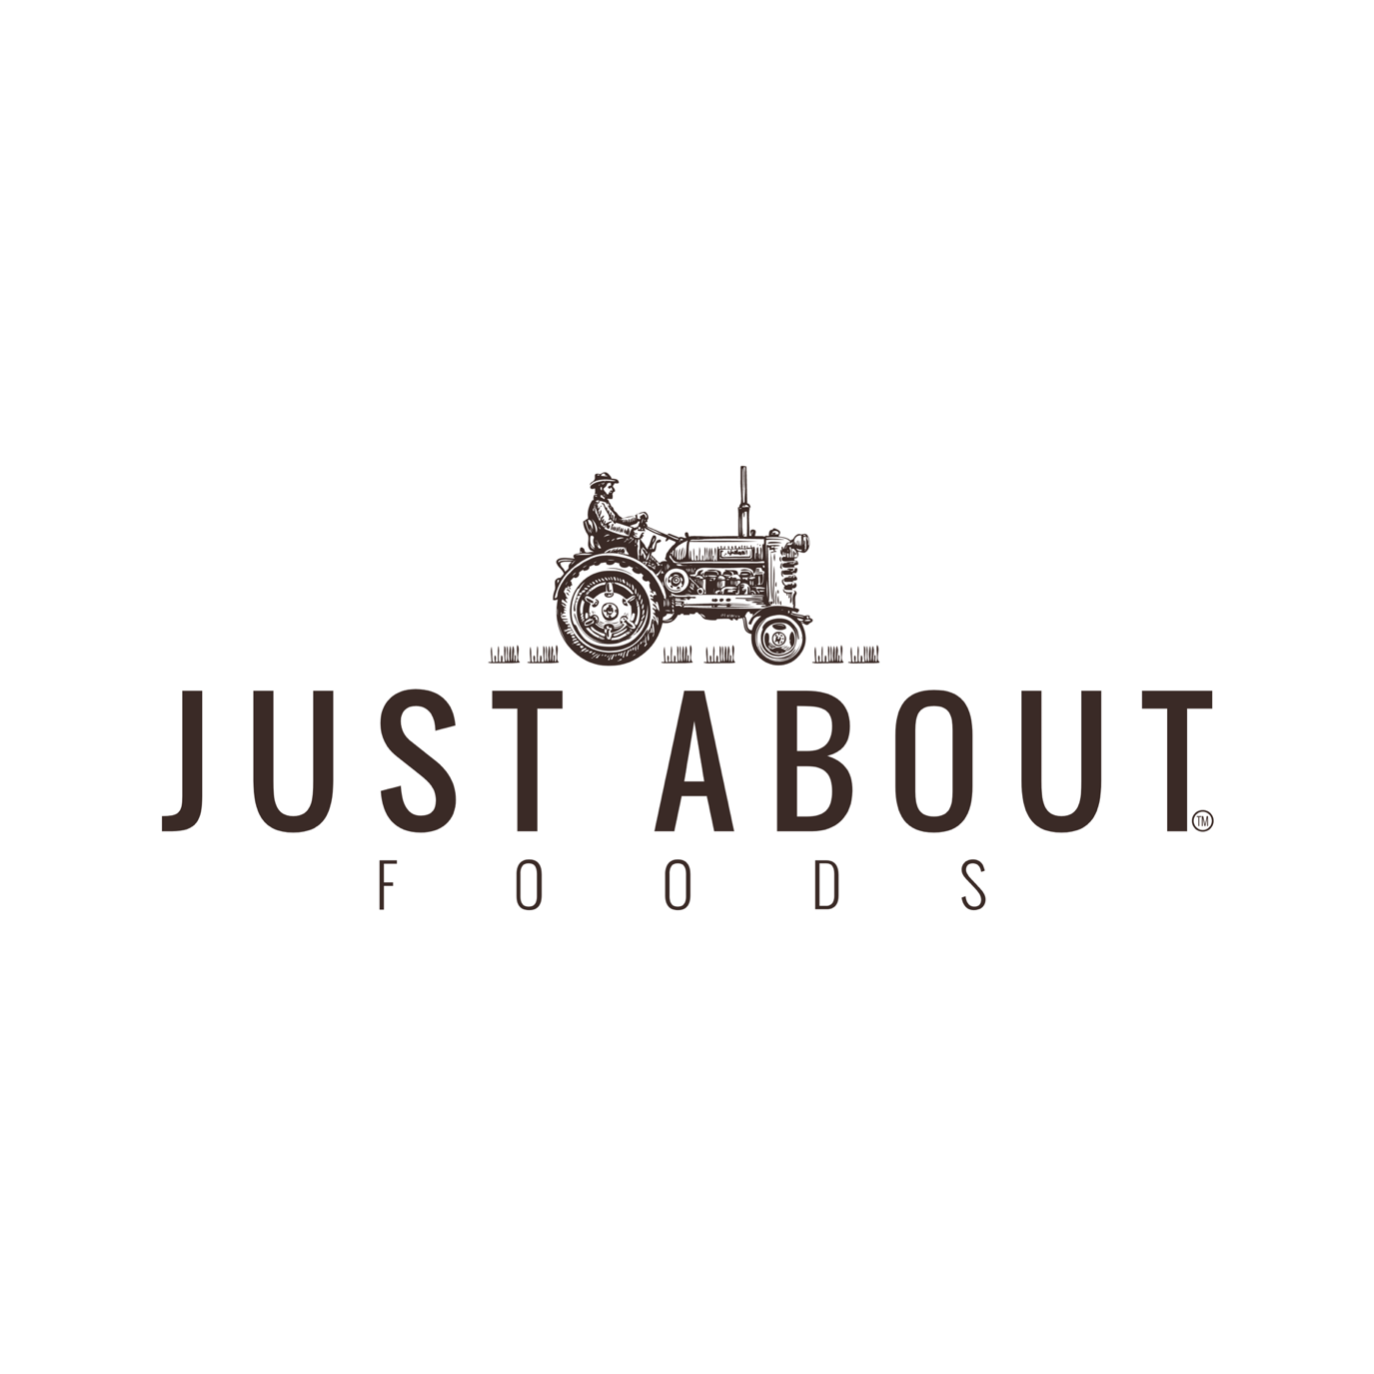 Just About Foods logo - Certified Paleo, KETO Certified, Grain Free Certified by the Paleo Foundation